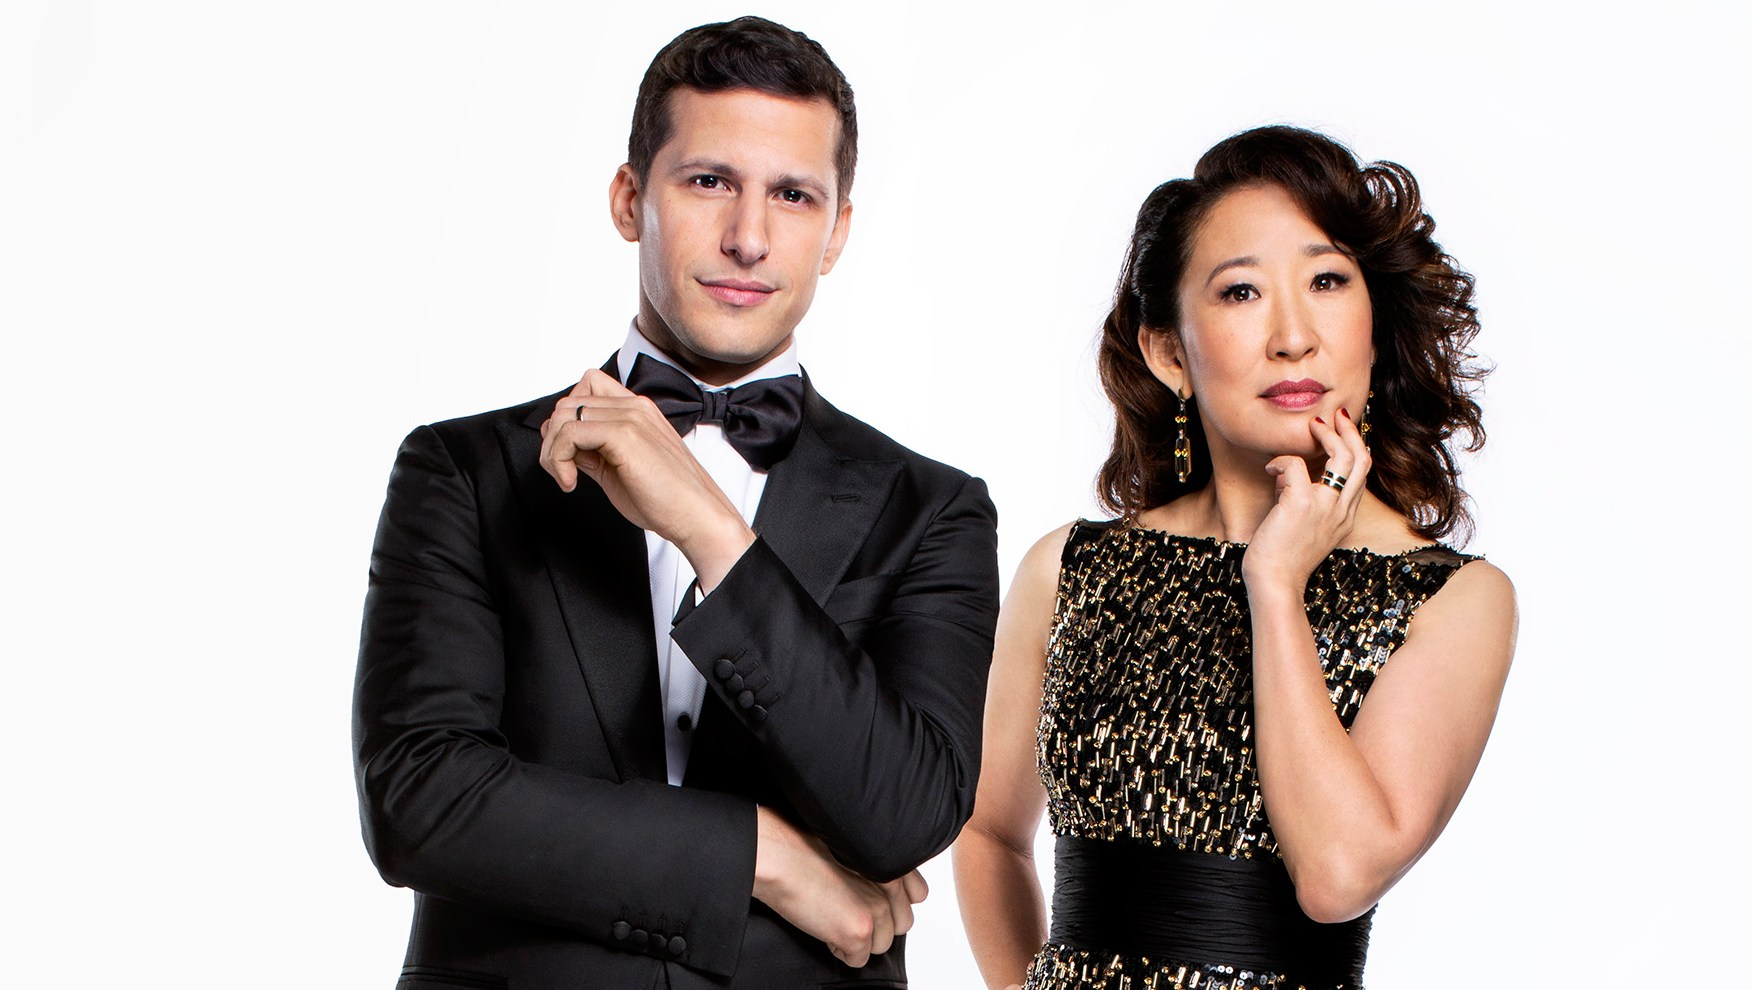 Andy Samberg and Sandra Oh golden globes 2019